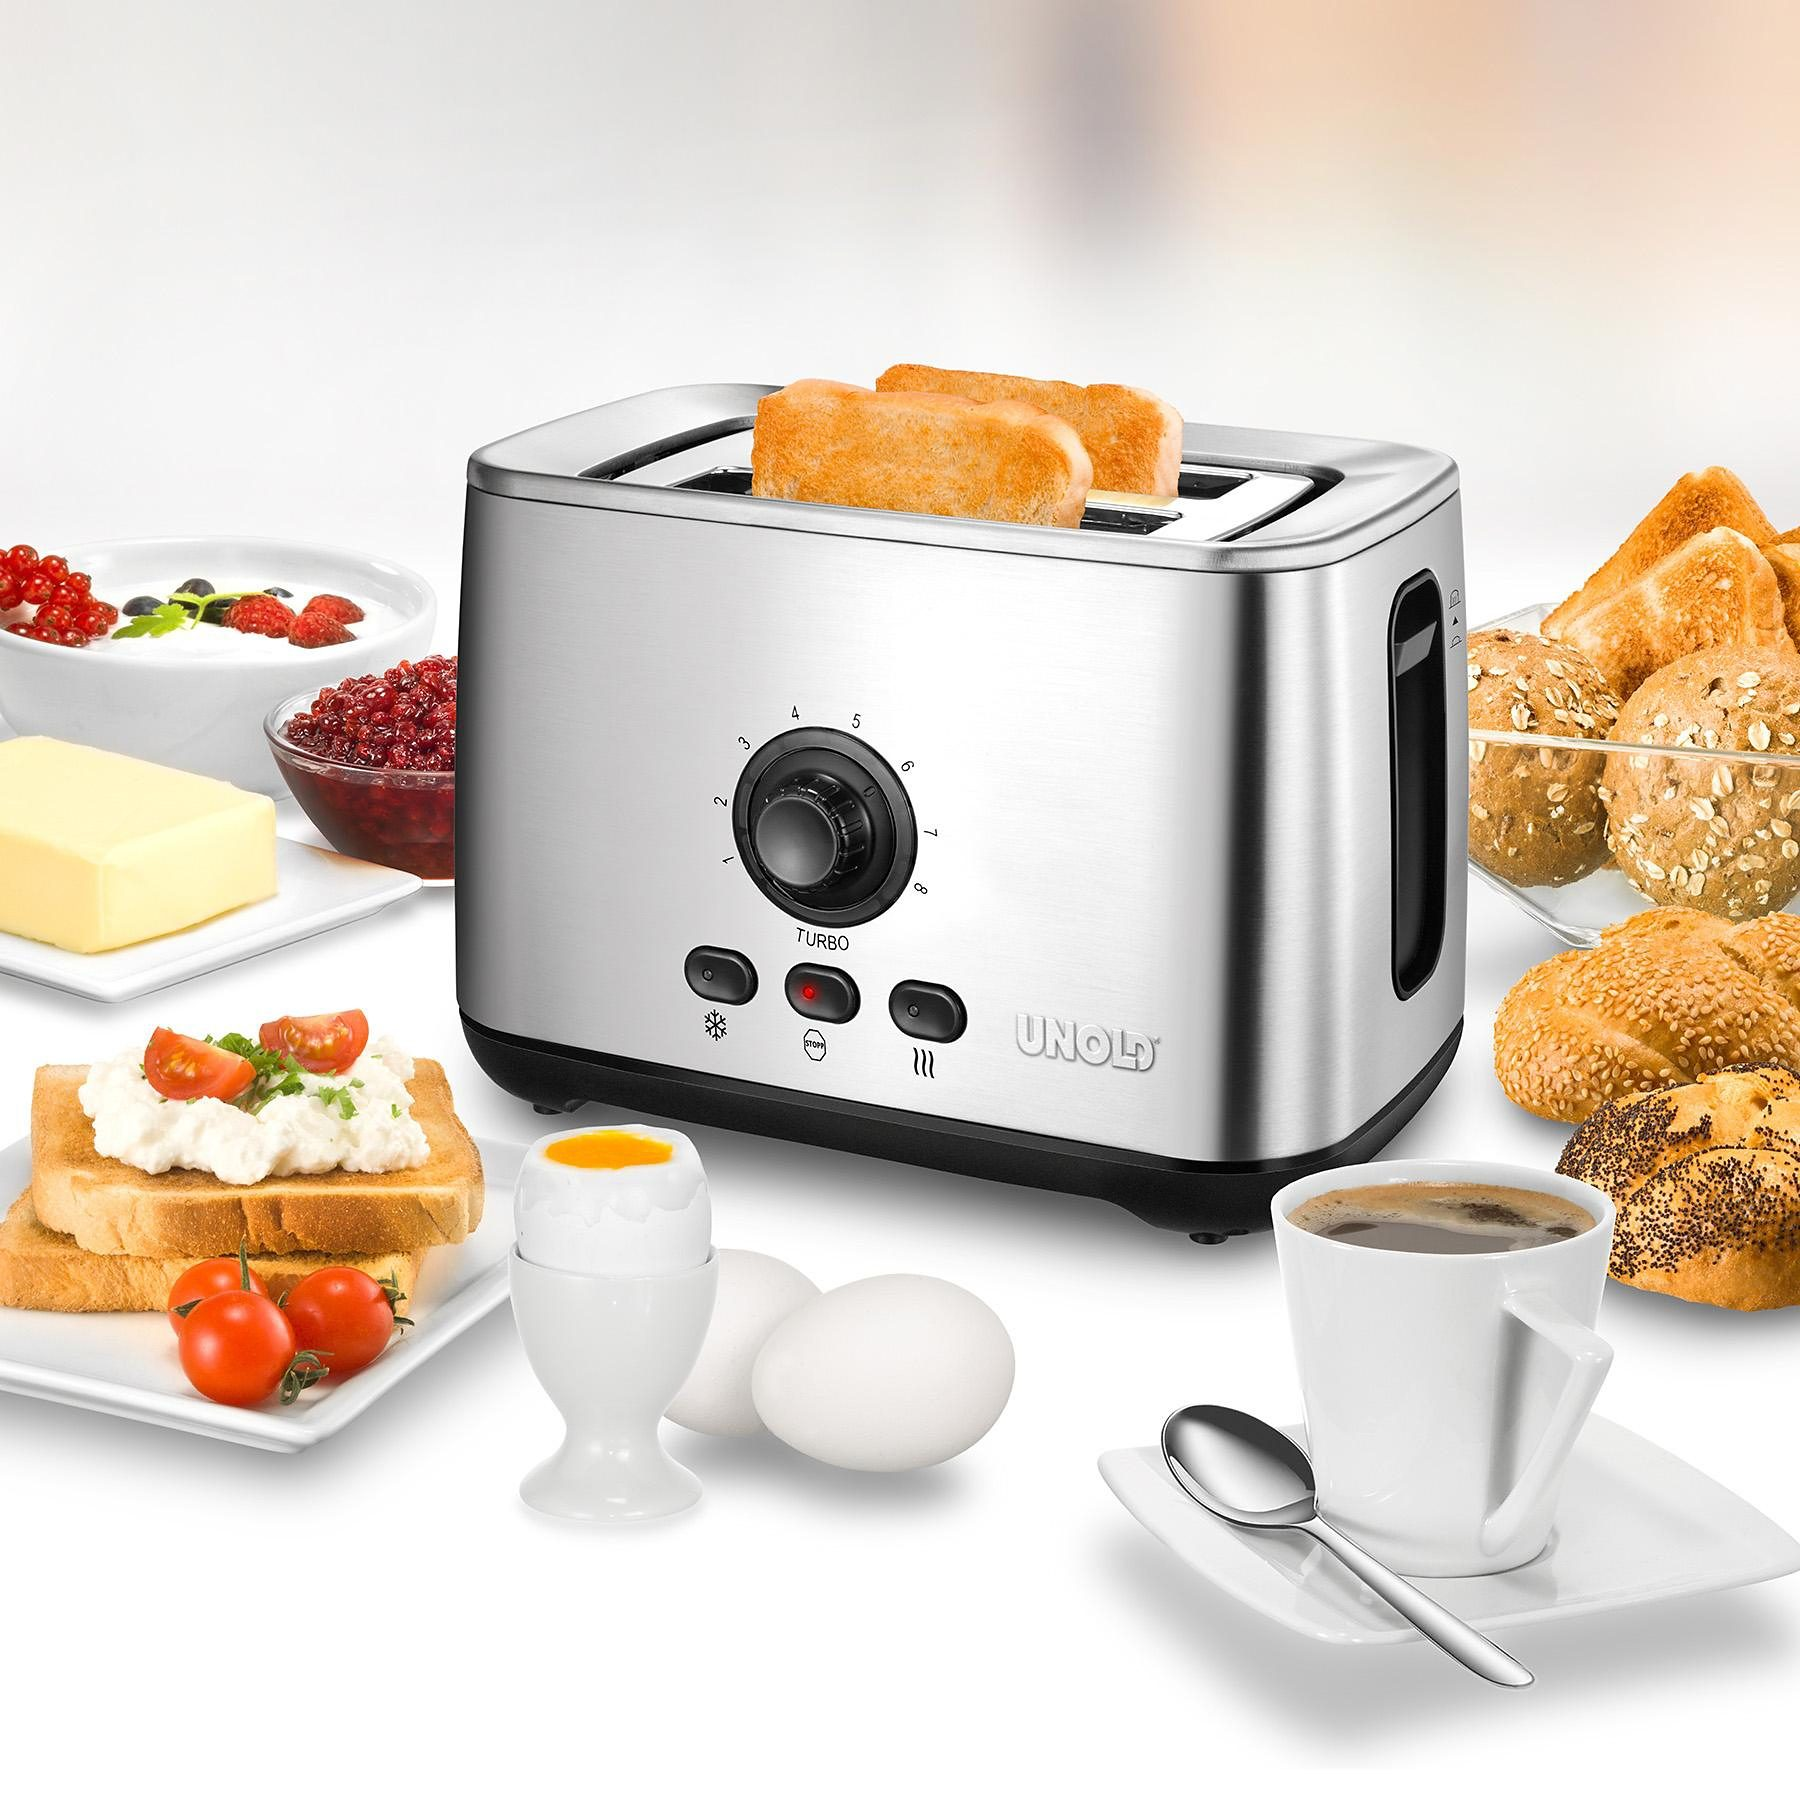 UNOLD® Toaster Turbo 38955, mit Turbo-Toast-Funktion, max. 2100 Watt